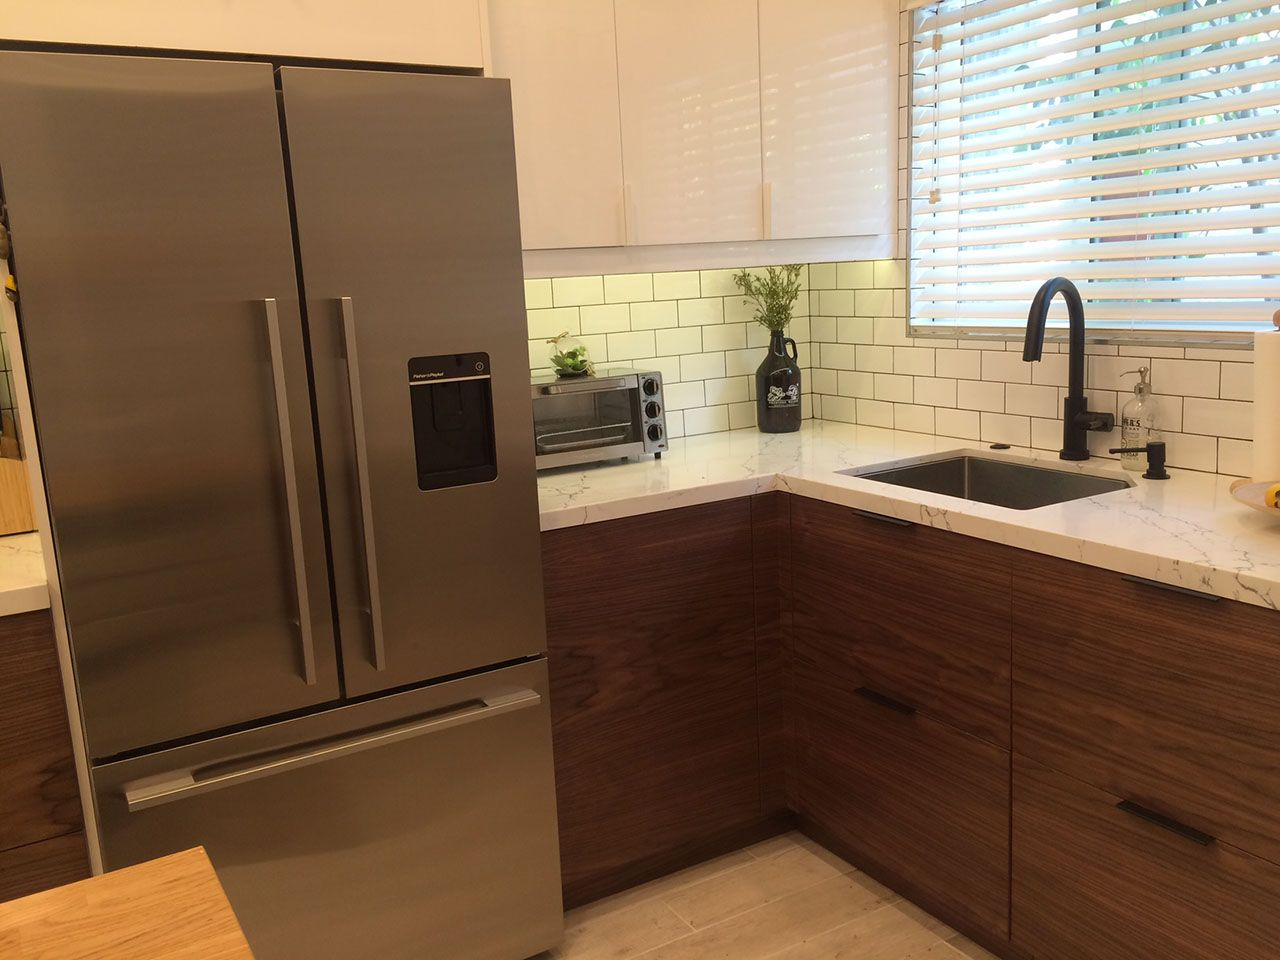 A Small IKEA Kitchen? Let's Get Vertical, Vertical Ikea